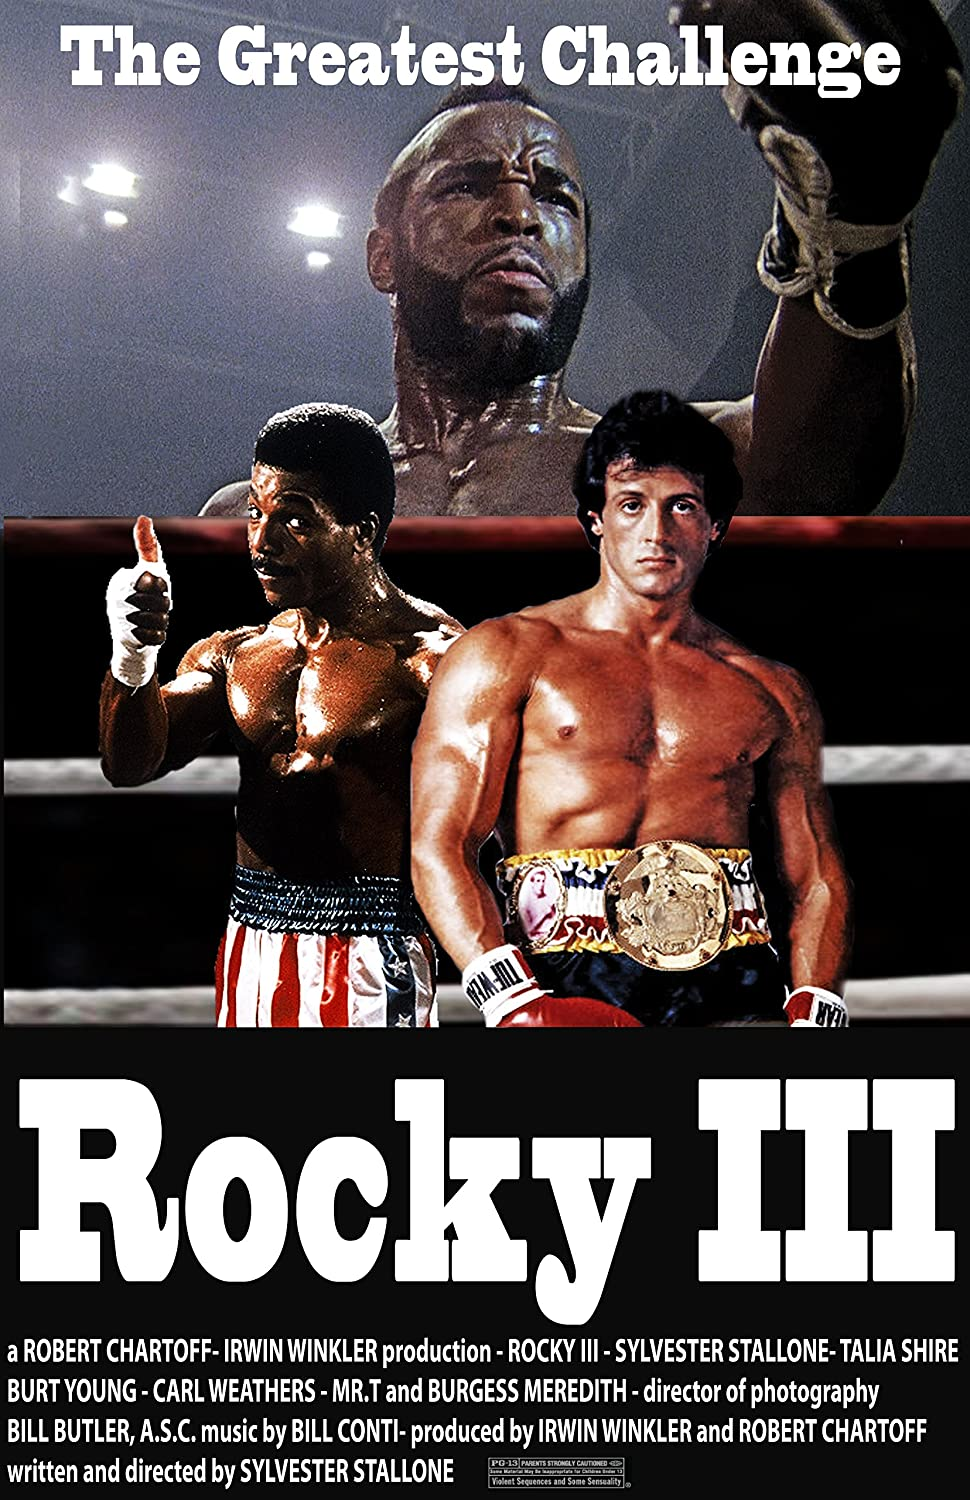 Rocky 3 Sylvester Stallone Movie Poster Reproduction ver2 Canvas Picture Art Print Premium Quality A0 A1 A2 A3 A4 (A0 Canvas (30 40))